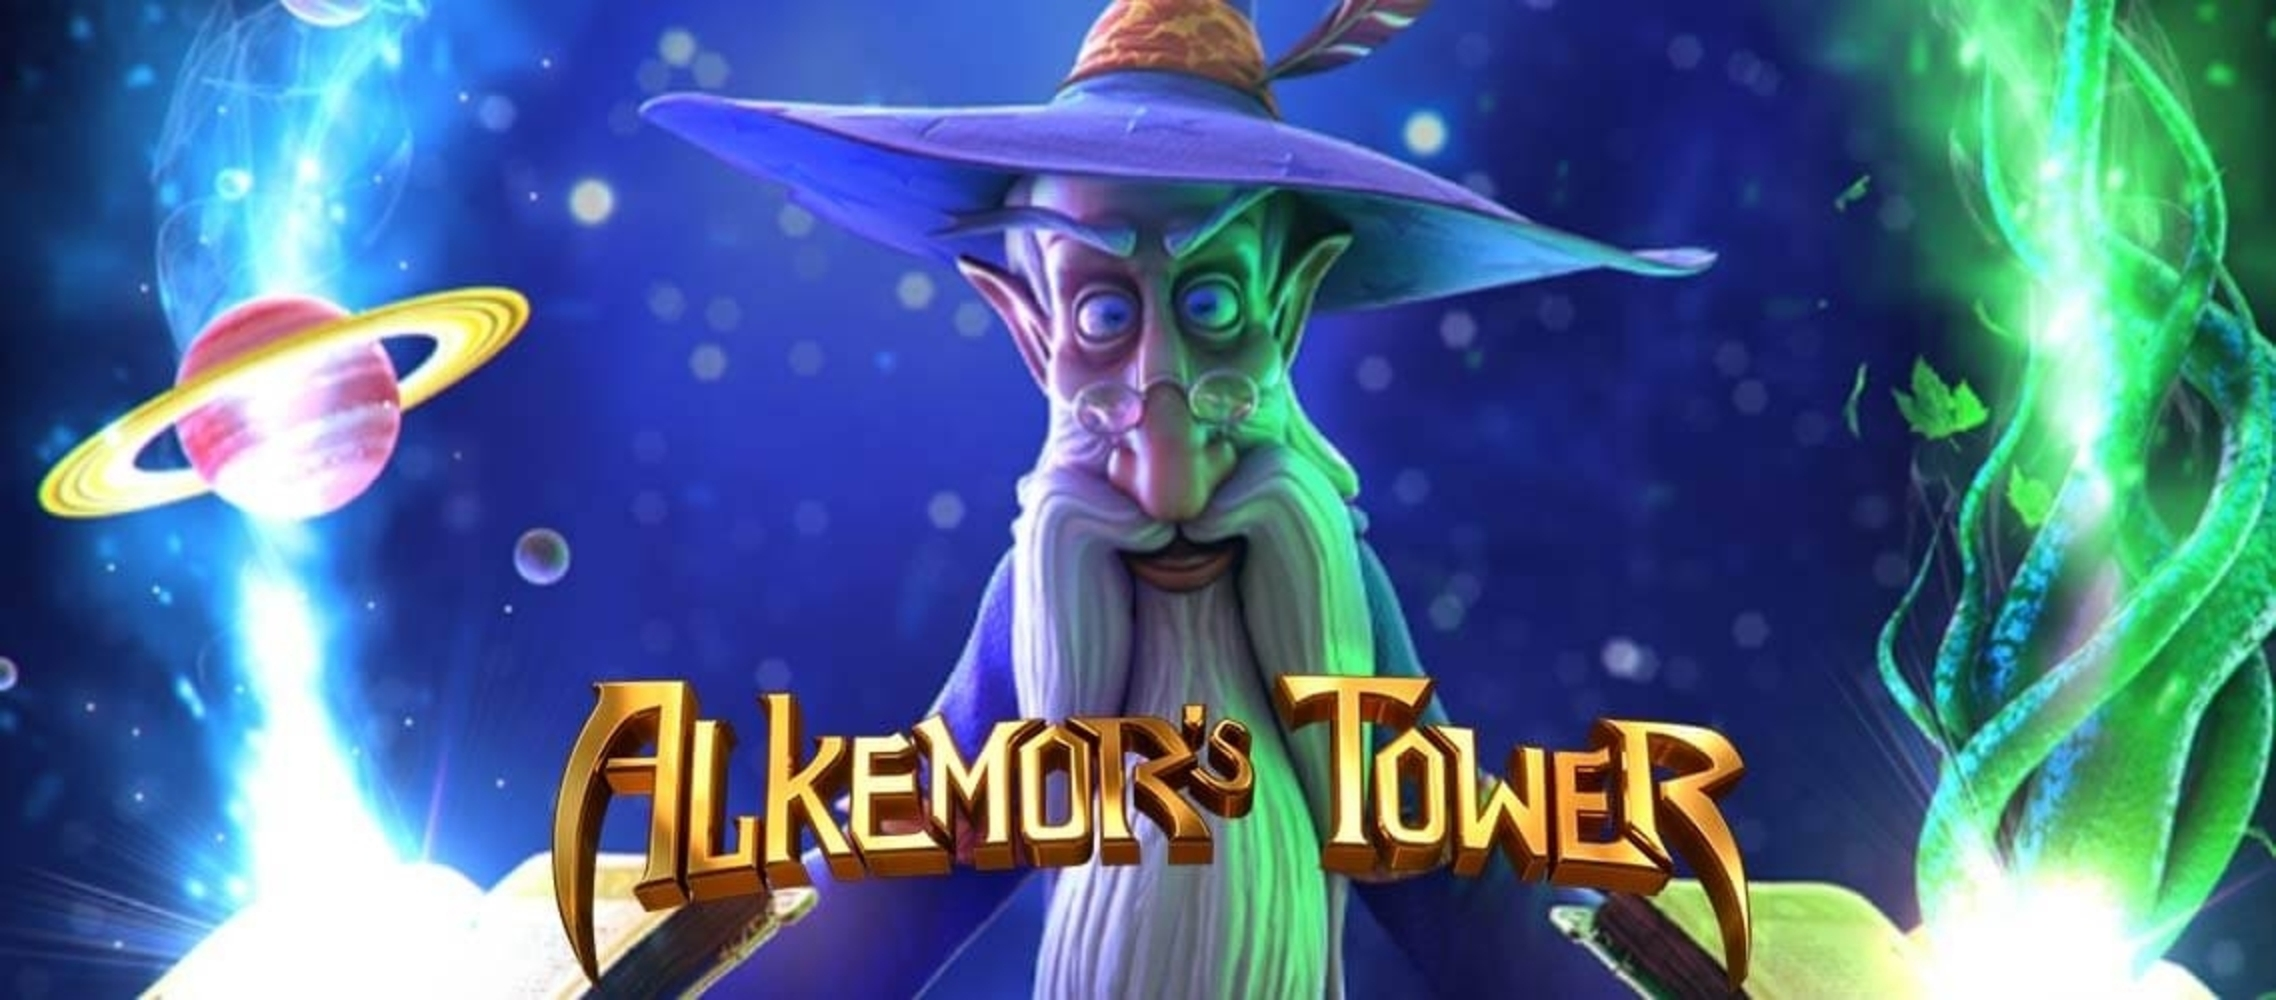 The Alkemors Tower Online Slot Demo Game by Betsoft